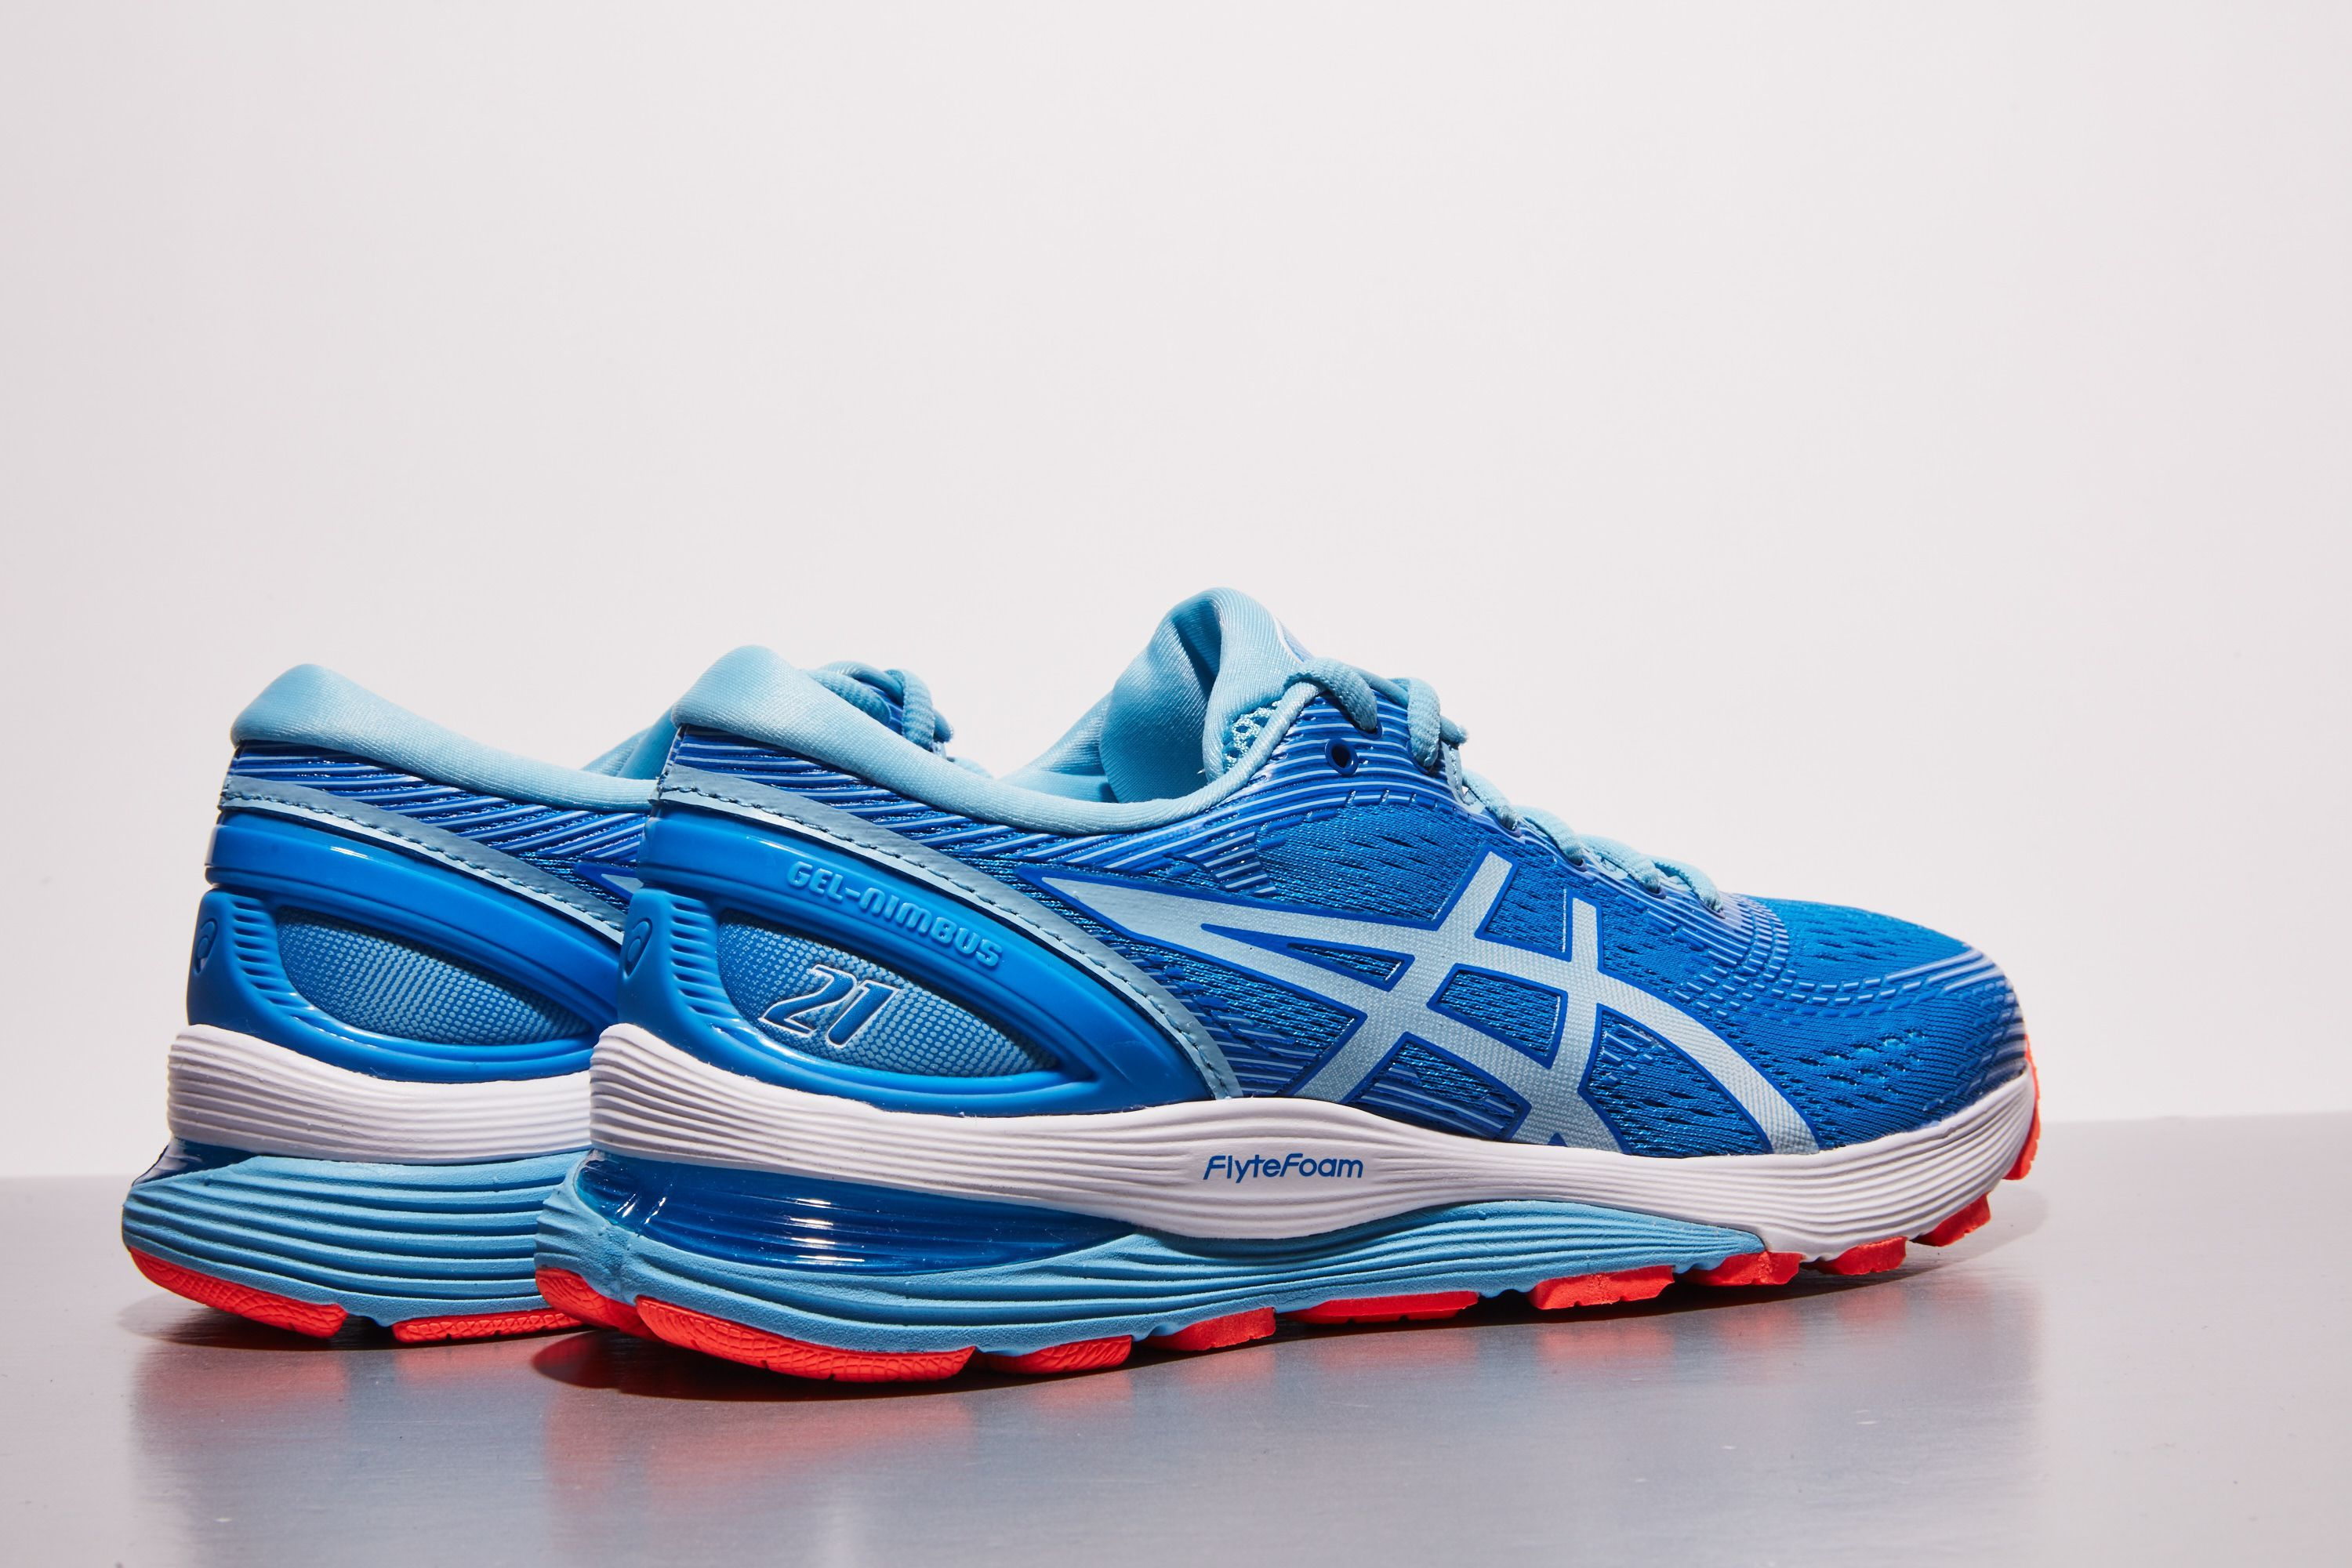 d6f929b929 Asics Gel-Nimbus 21 Review — Cushioned Running Shoes